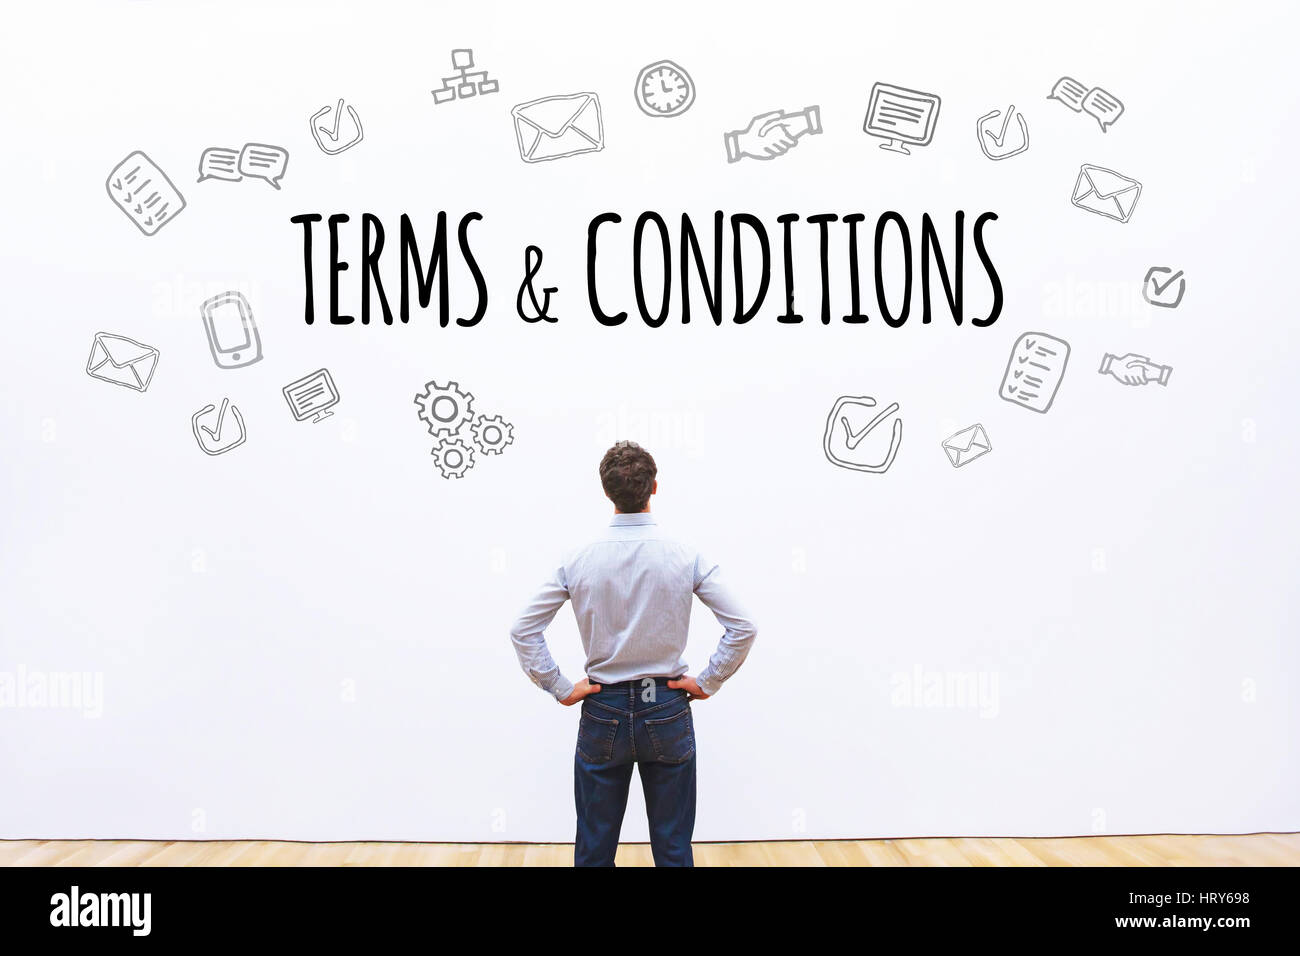 terms and conditions, word concept background - Stock Image